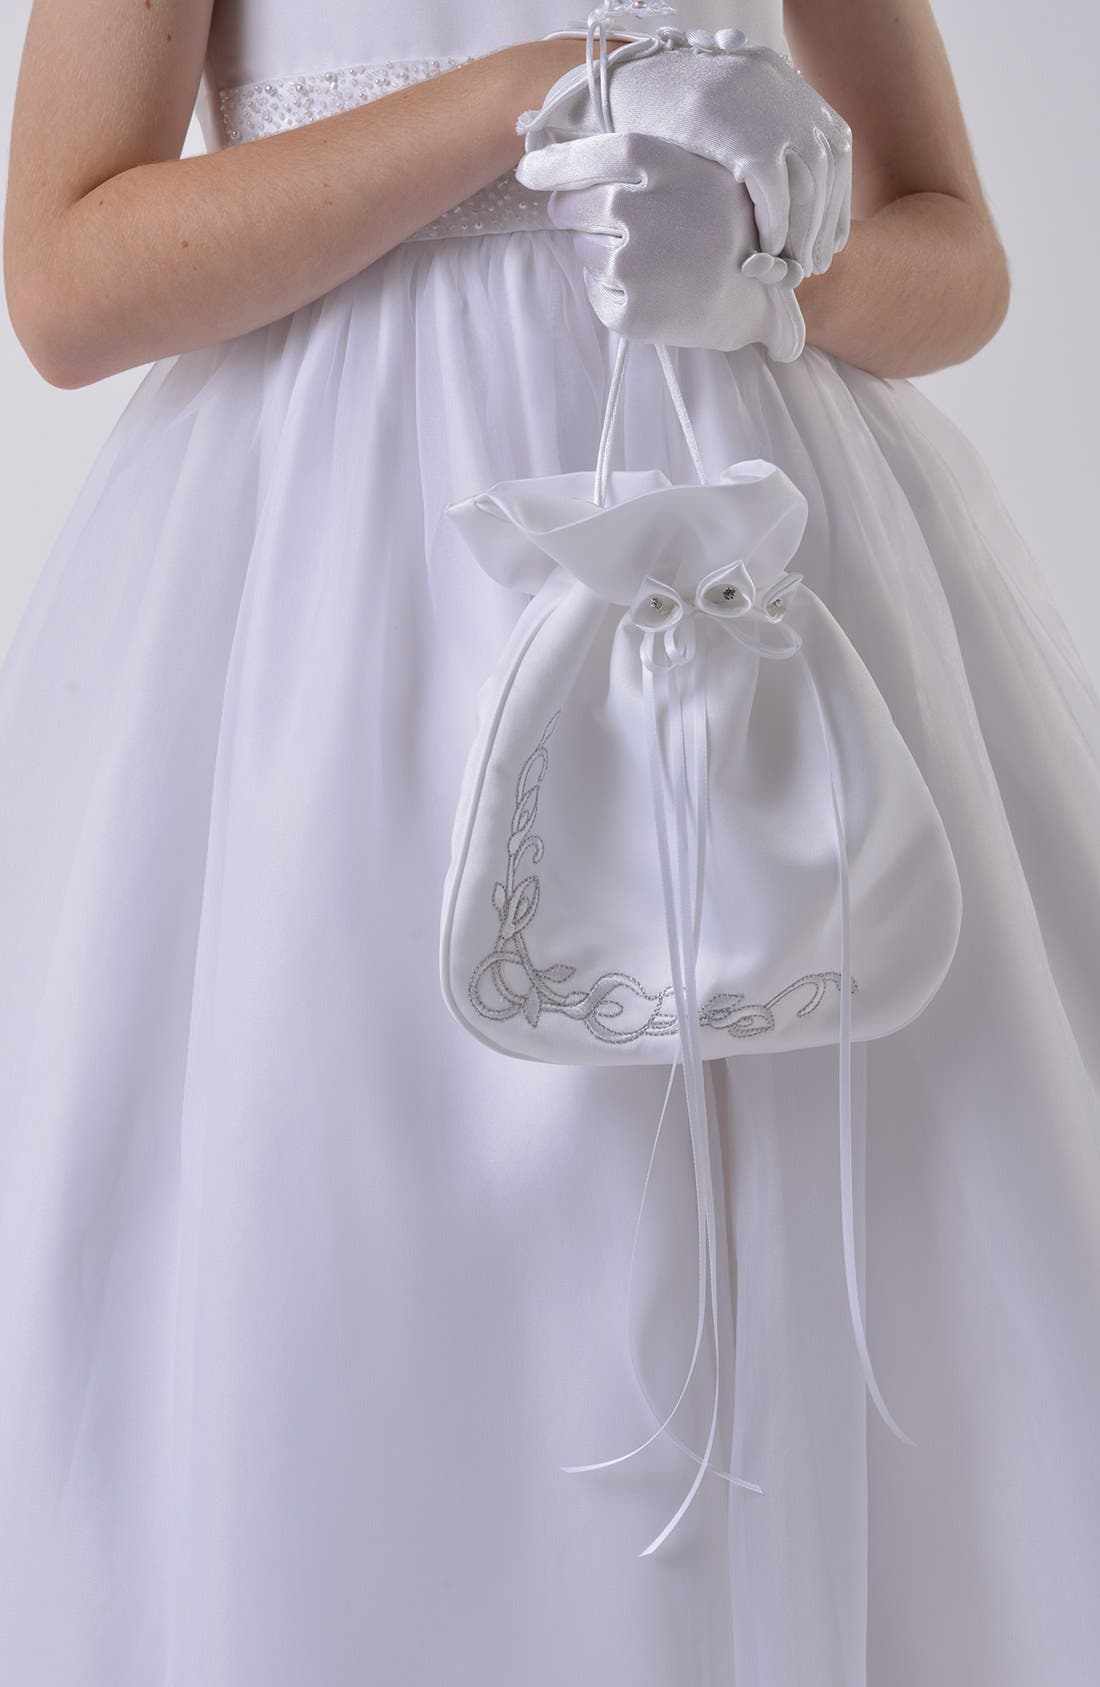 Main Image - Us Angels Communion Satin Drawstring Bag